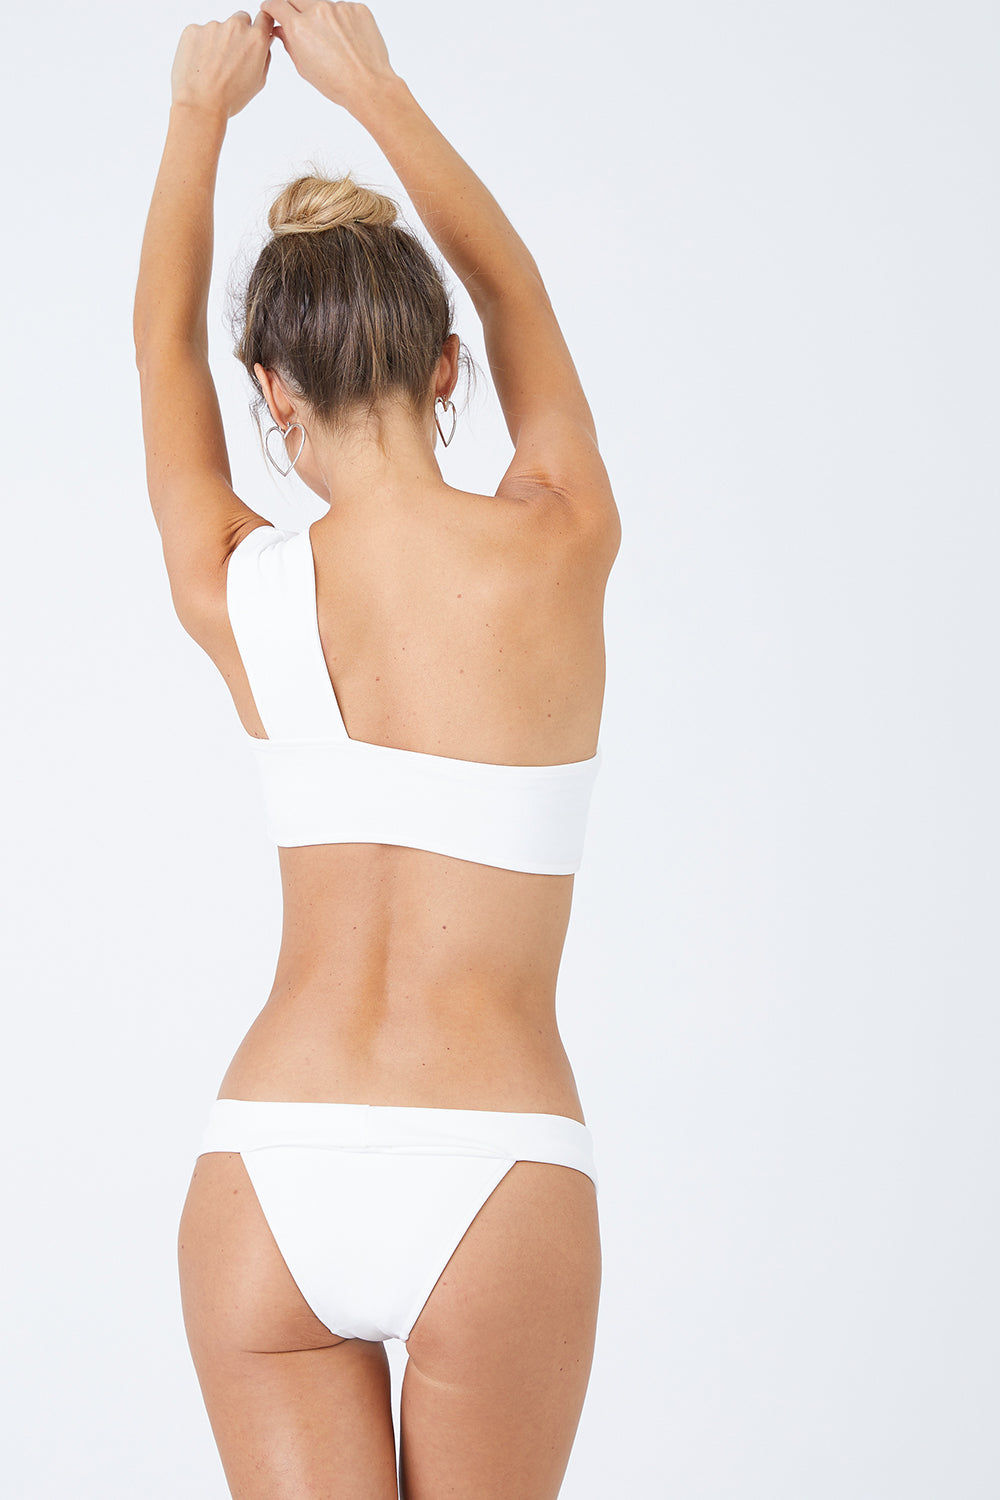 HAIGHT Maria Low-Rise Bikini Bottom - Off-White Bikini Bottom | Off-White| Haight Maria Low Rise Bikini Bottom - Off-White Features:  Low rise briefs Slight cheeky coverage Fits small to size Slips on Back View